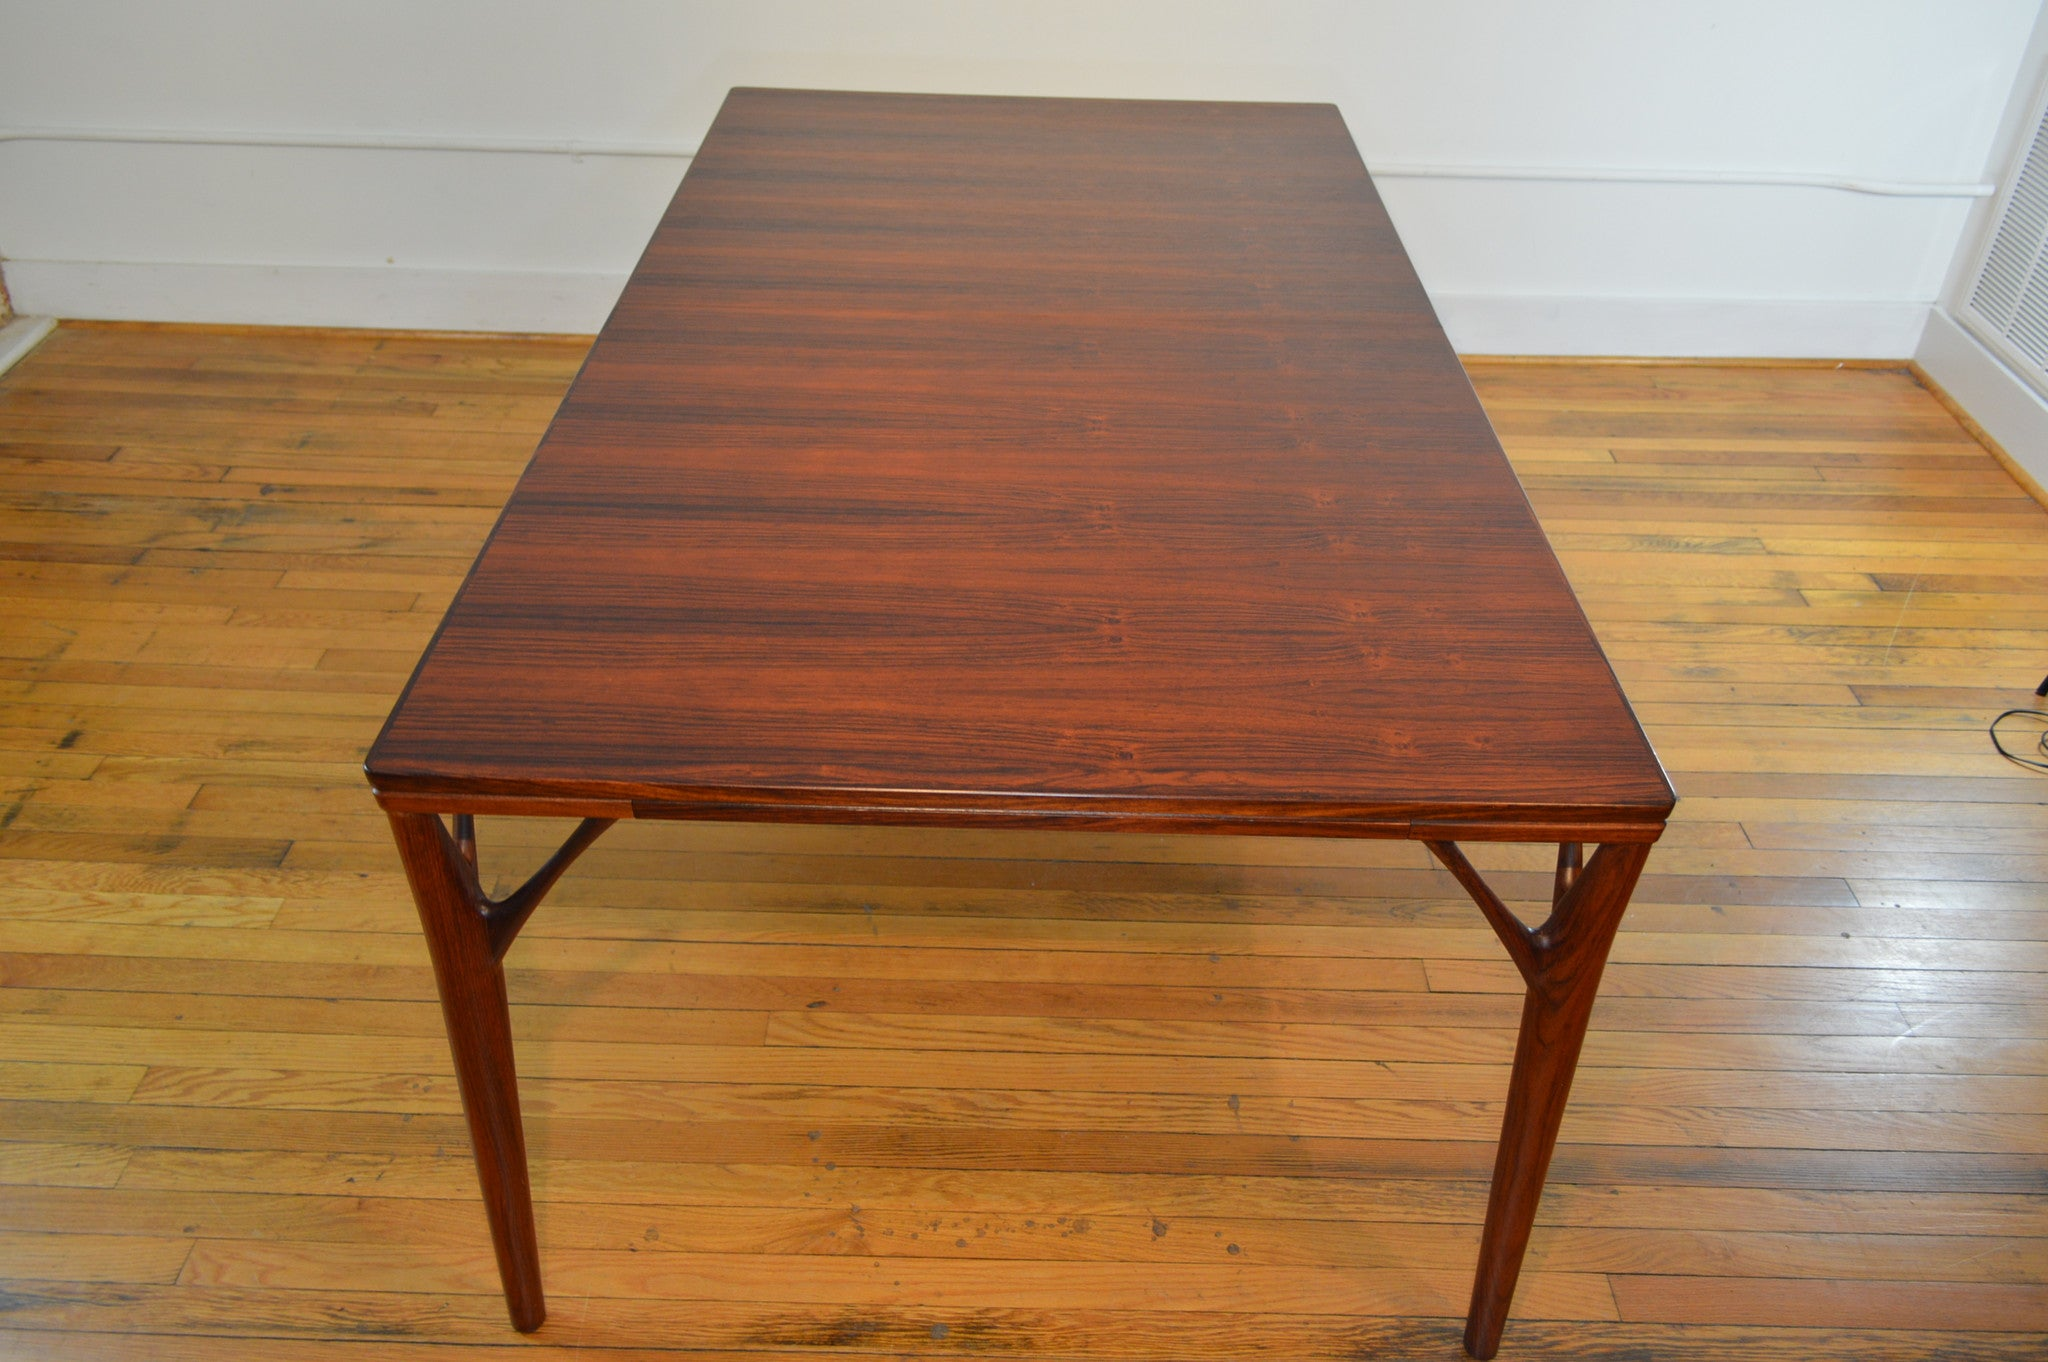 Helge Vestergaard Jensen Rosewood Dining Table with Butterfly Leaf